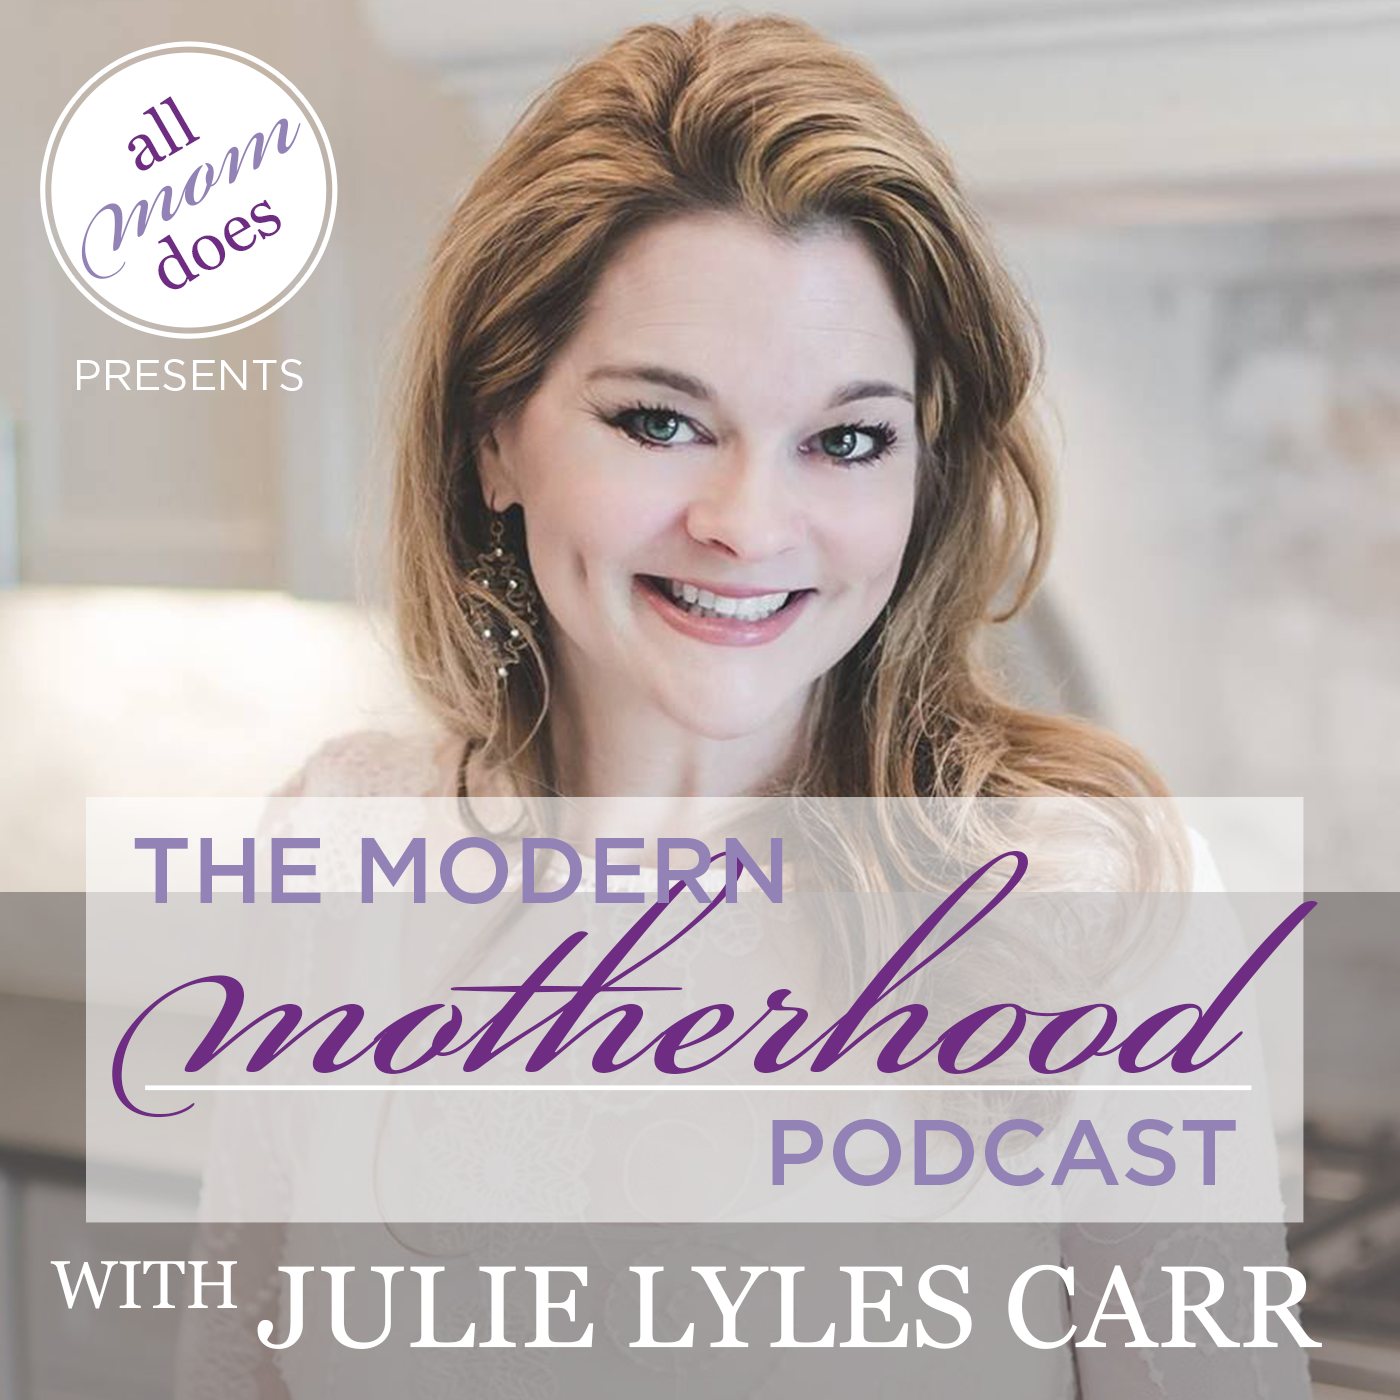 NEW Podcast Launching Jan 16th - The Modern Motherhood Podcast with Julie Lyles Carr